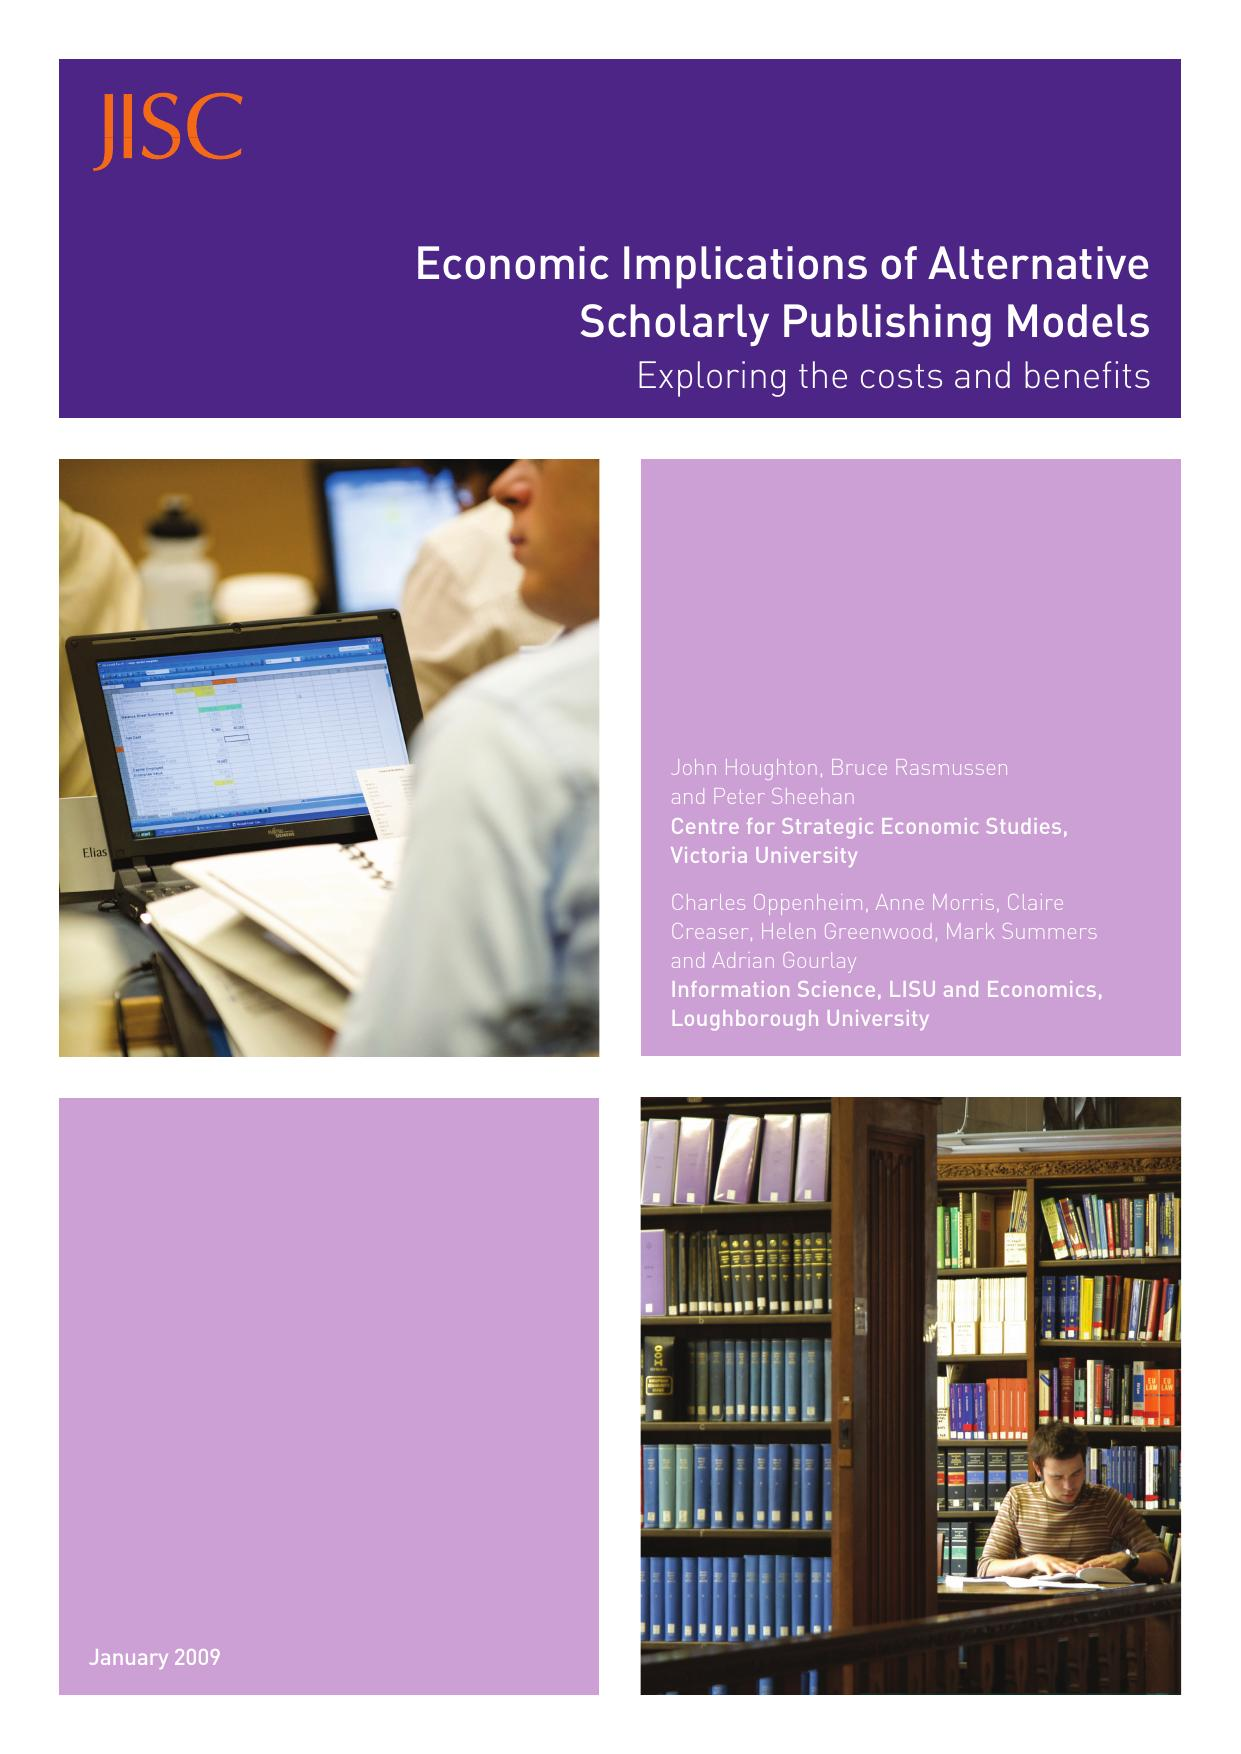 Economic Implications of Alternative Scholarly: exploring the costs and benefits